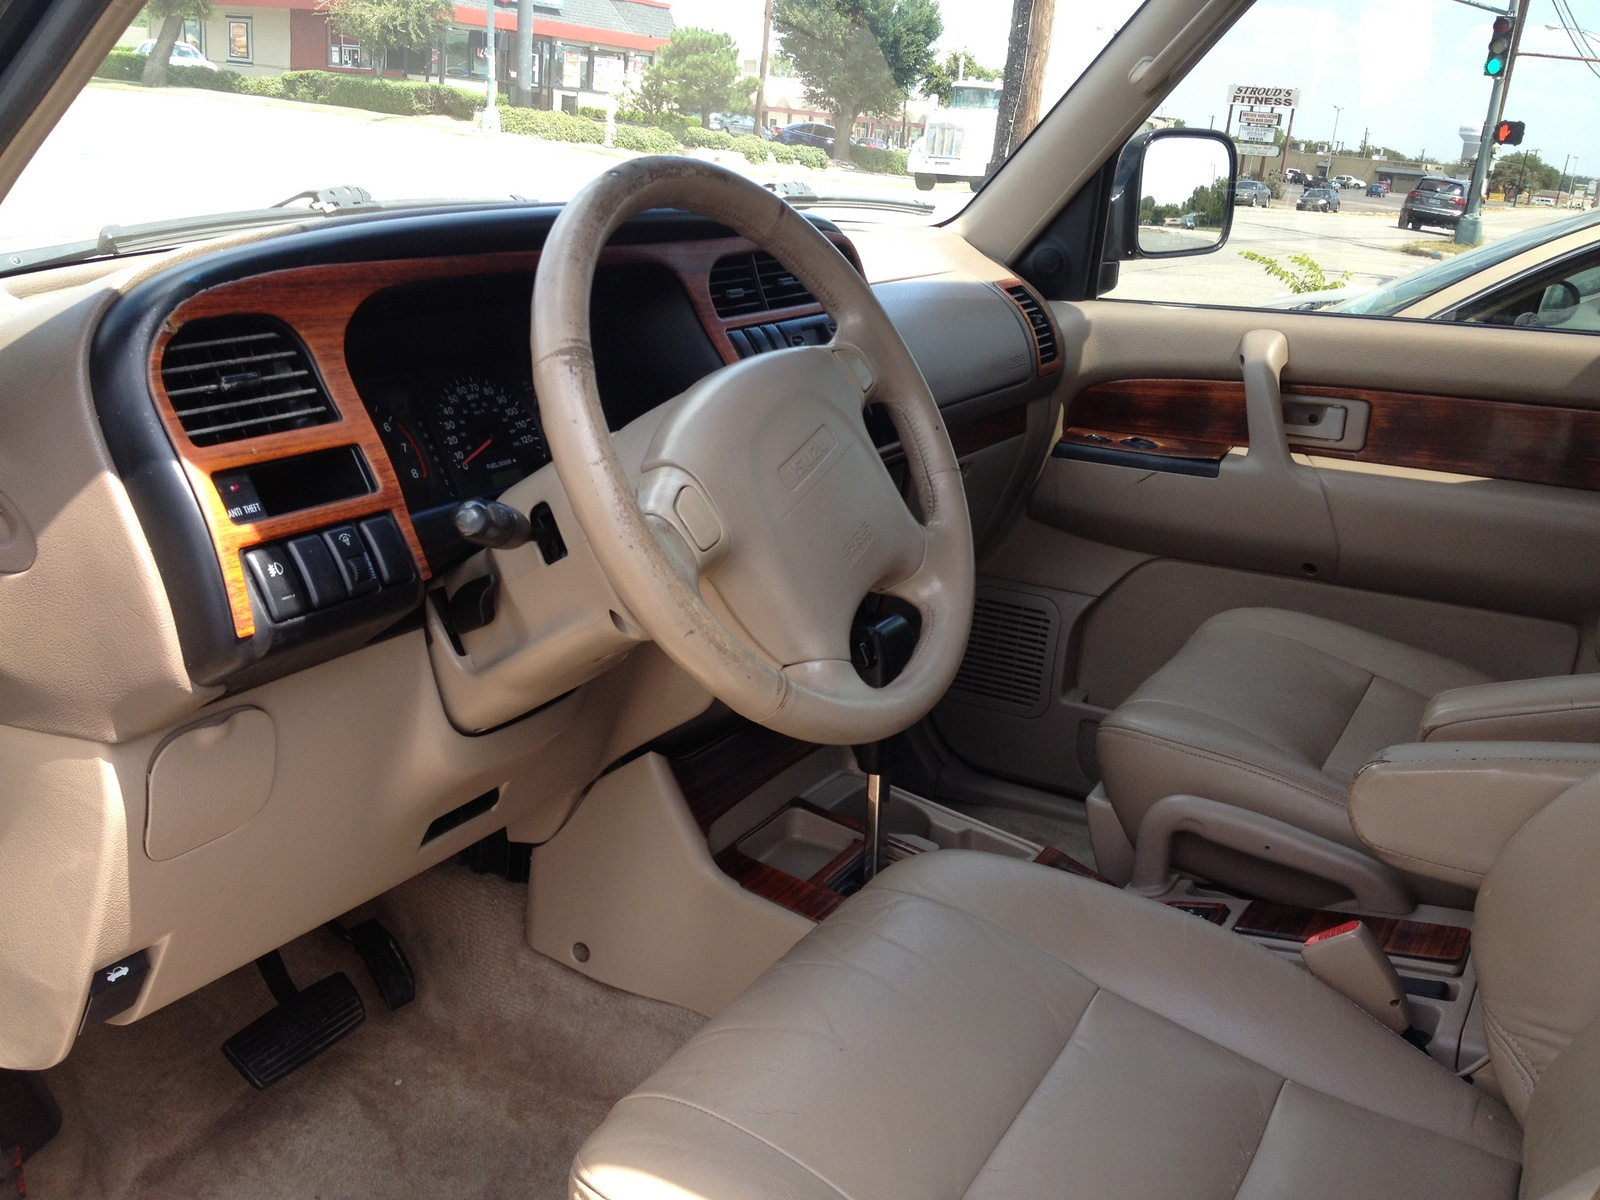 picture of 2001 isuzu trooper 4 dr ls suv interior. Black Bedroom Furniture Sets. Home Design Ideas